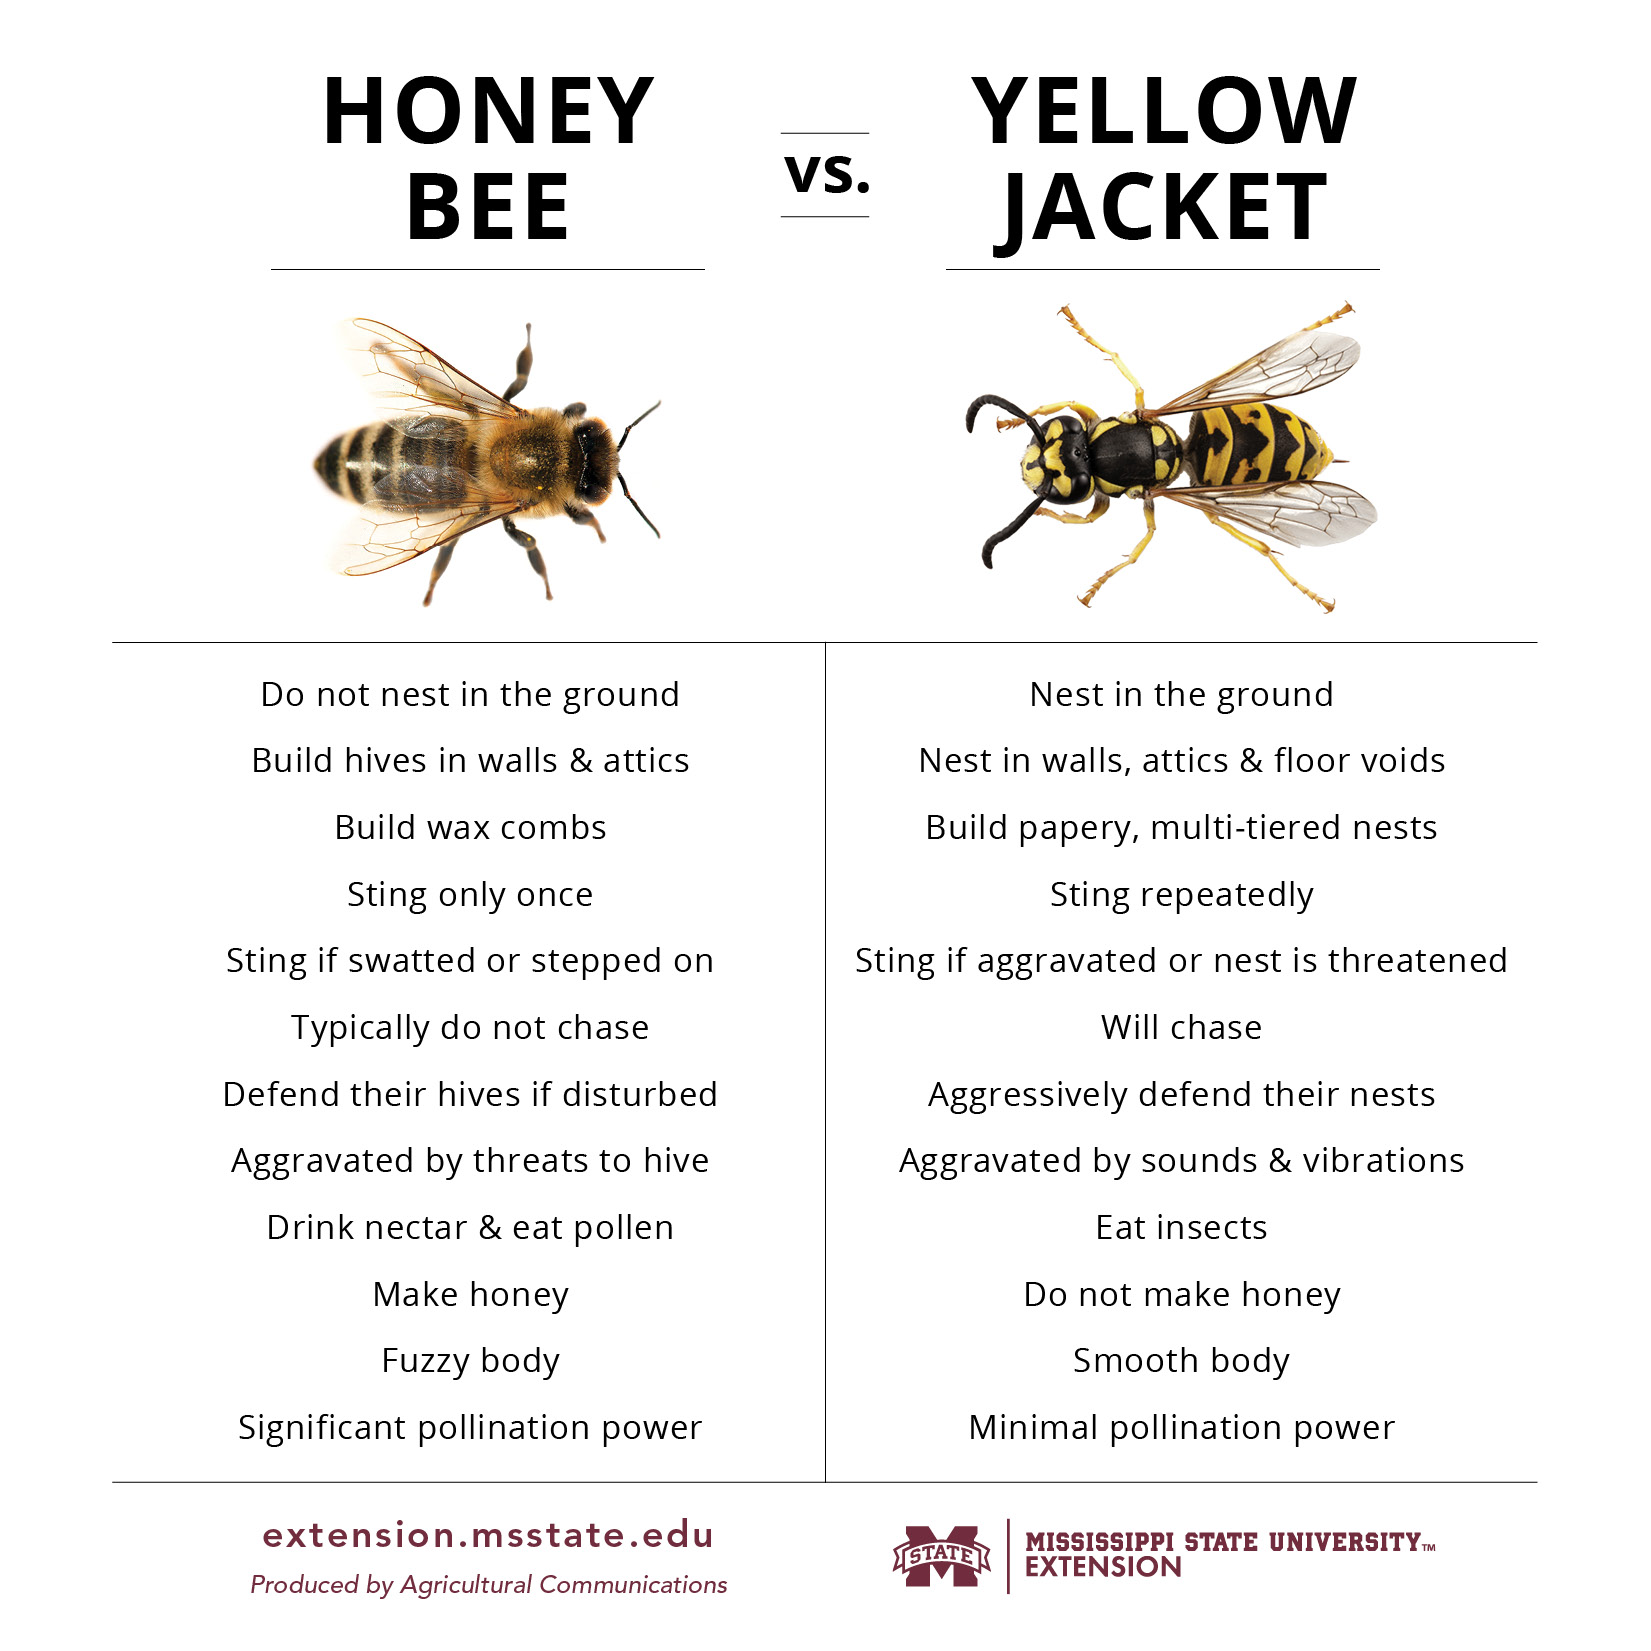 A chart of the differences between honey bees and yellow jackets.